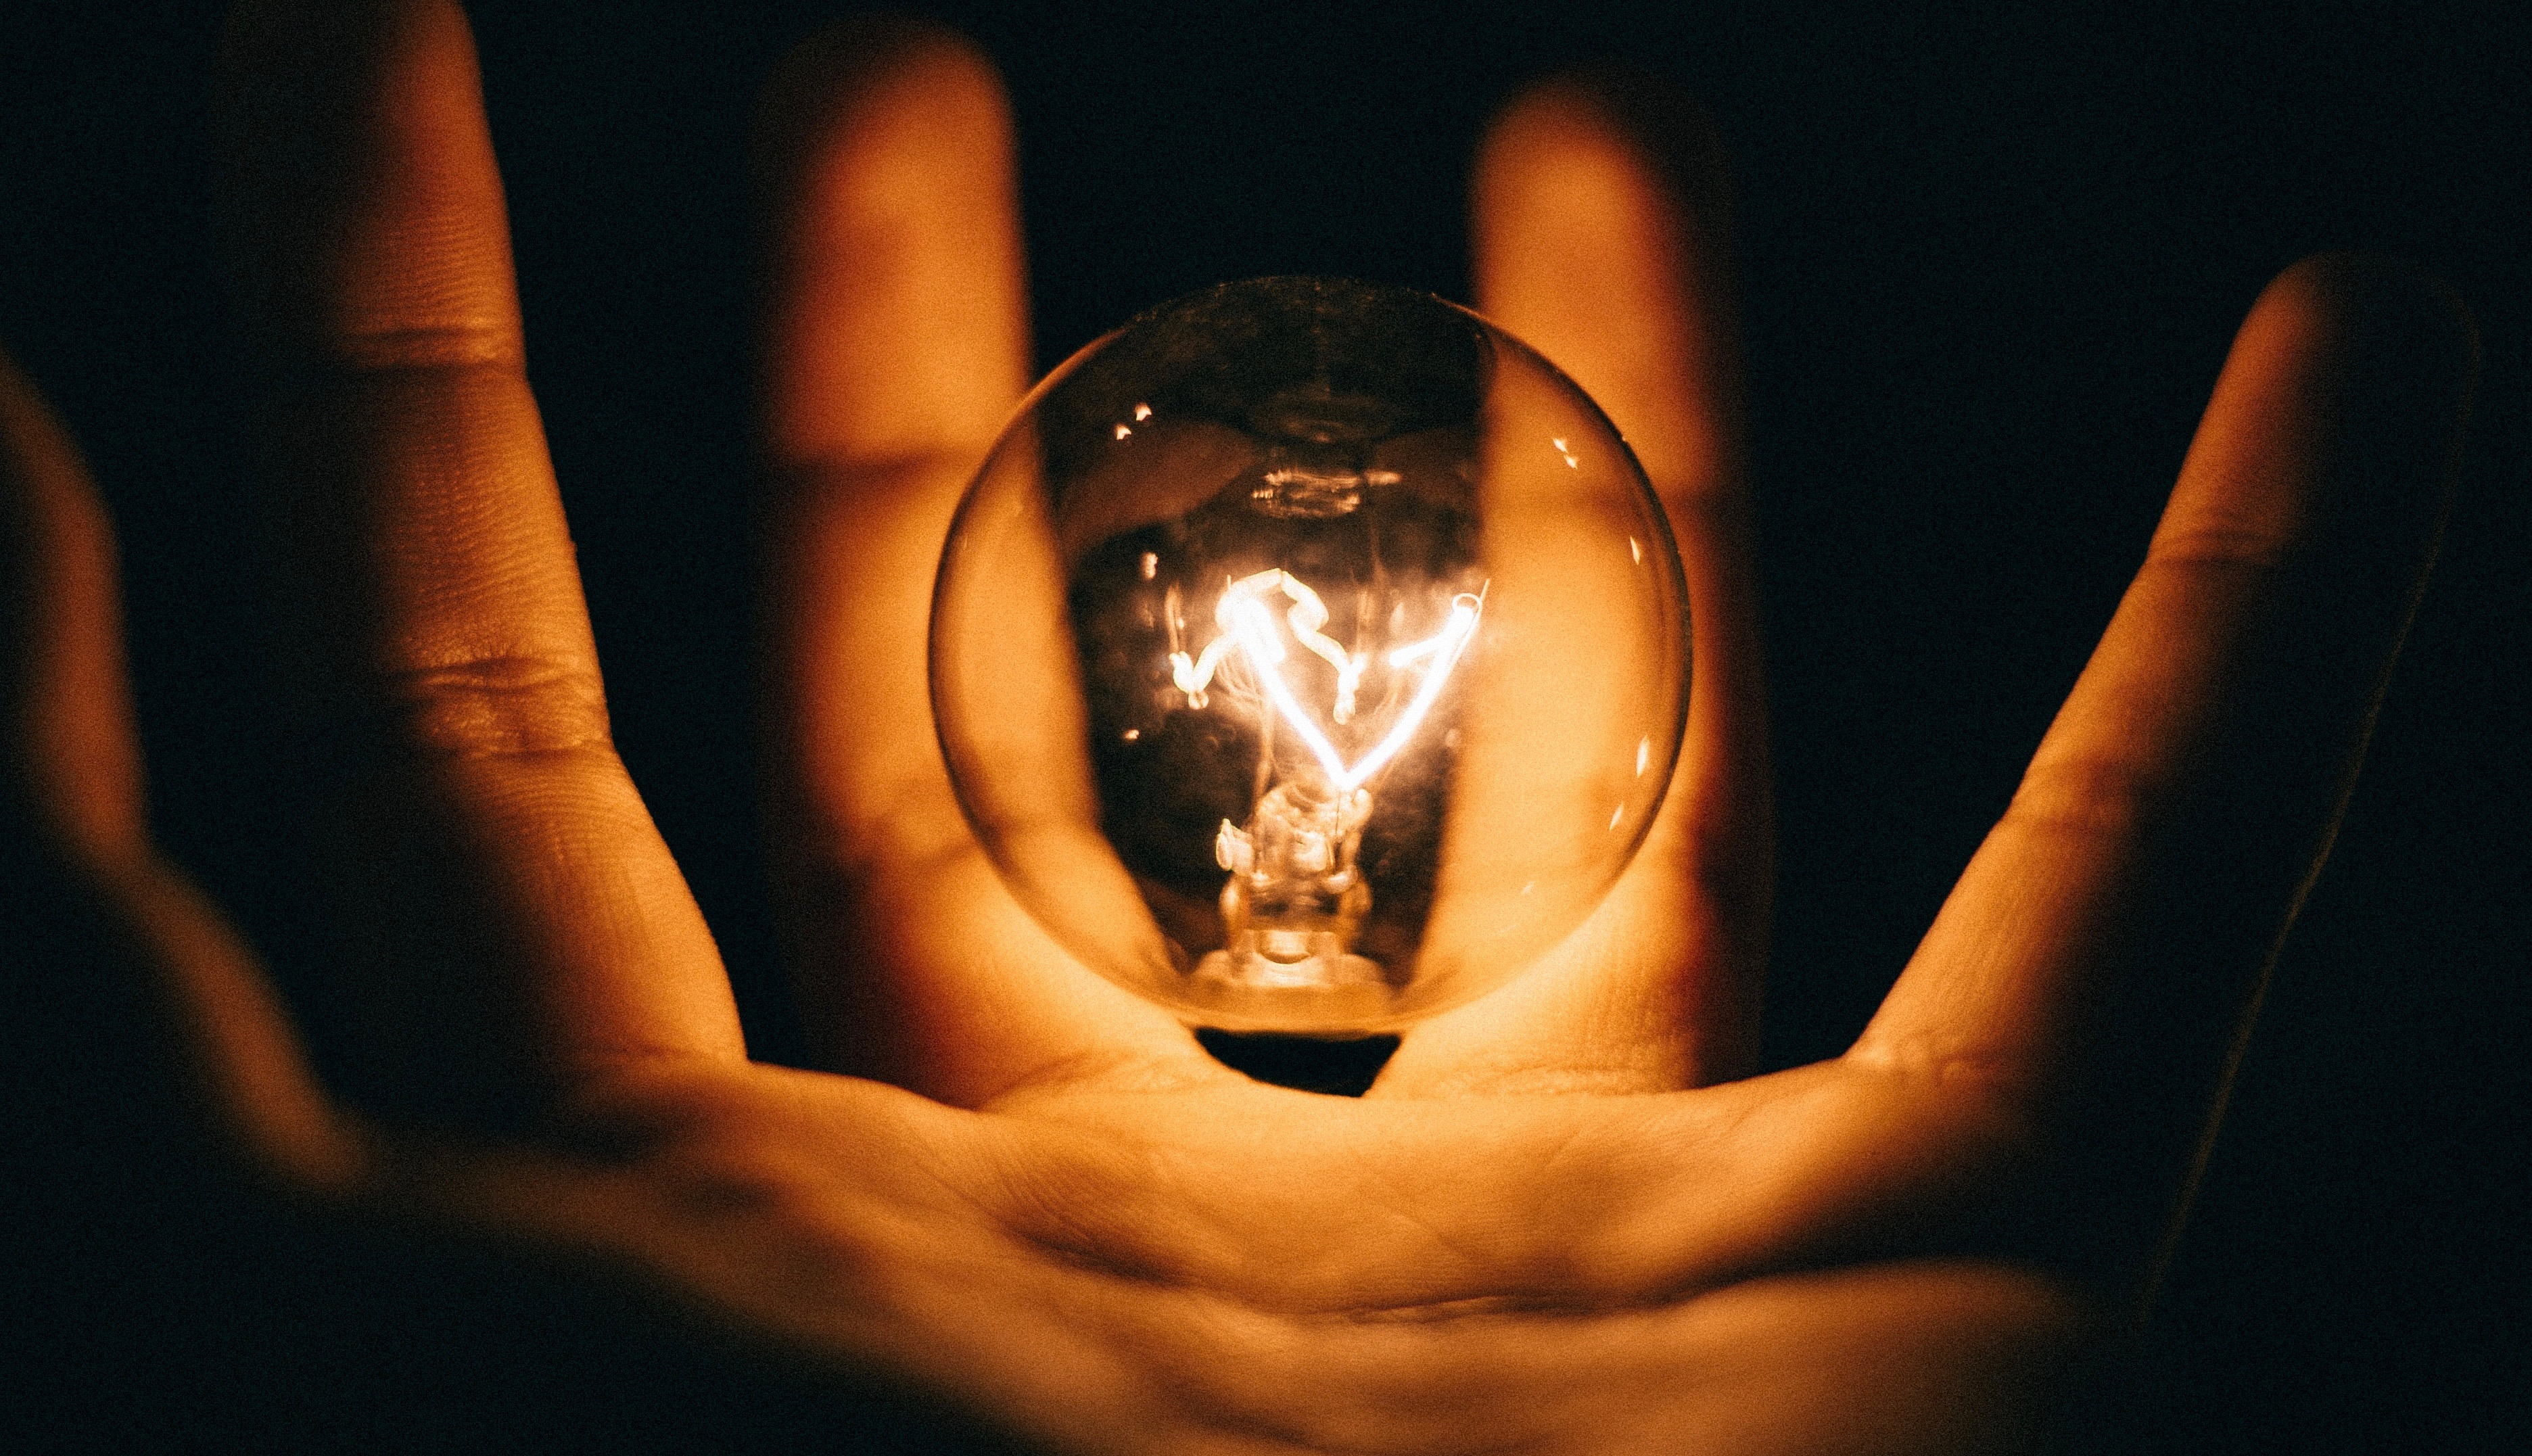 person holding lightbulb in palm of hand